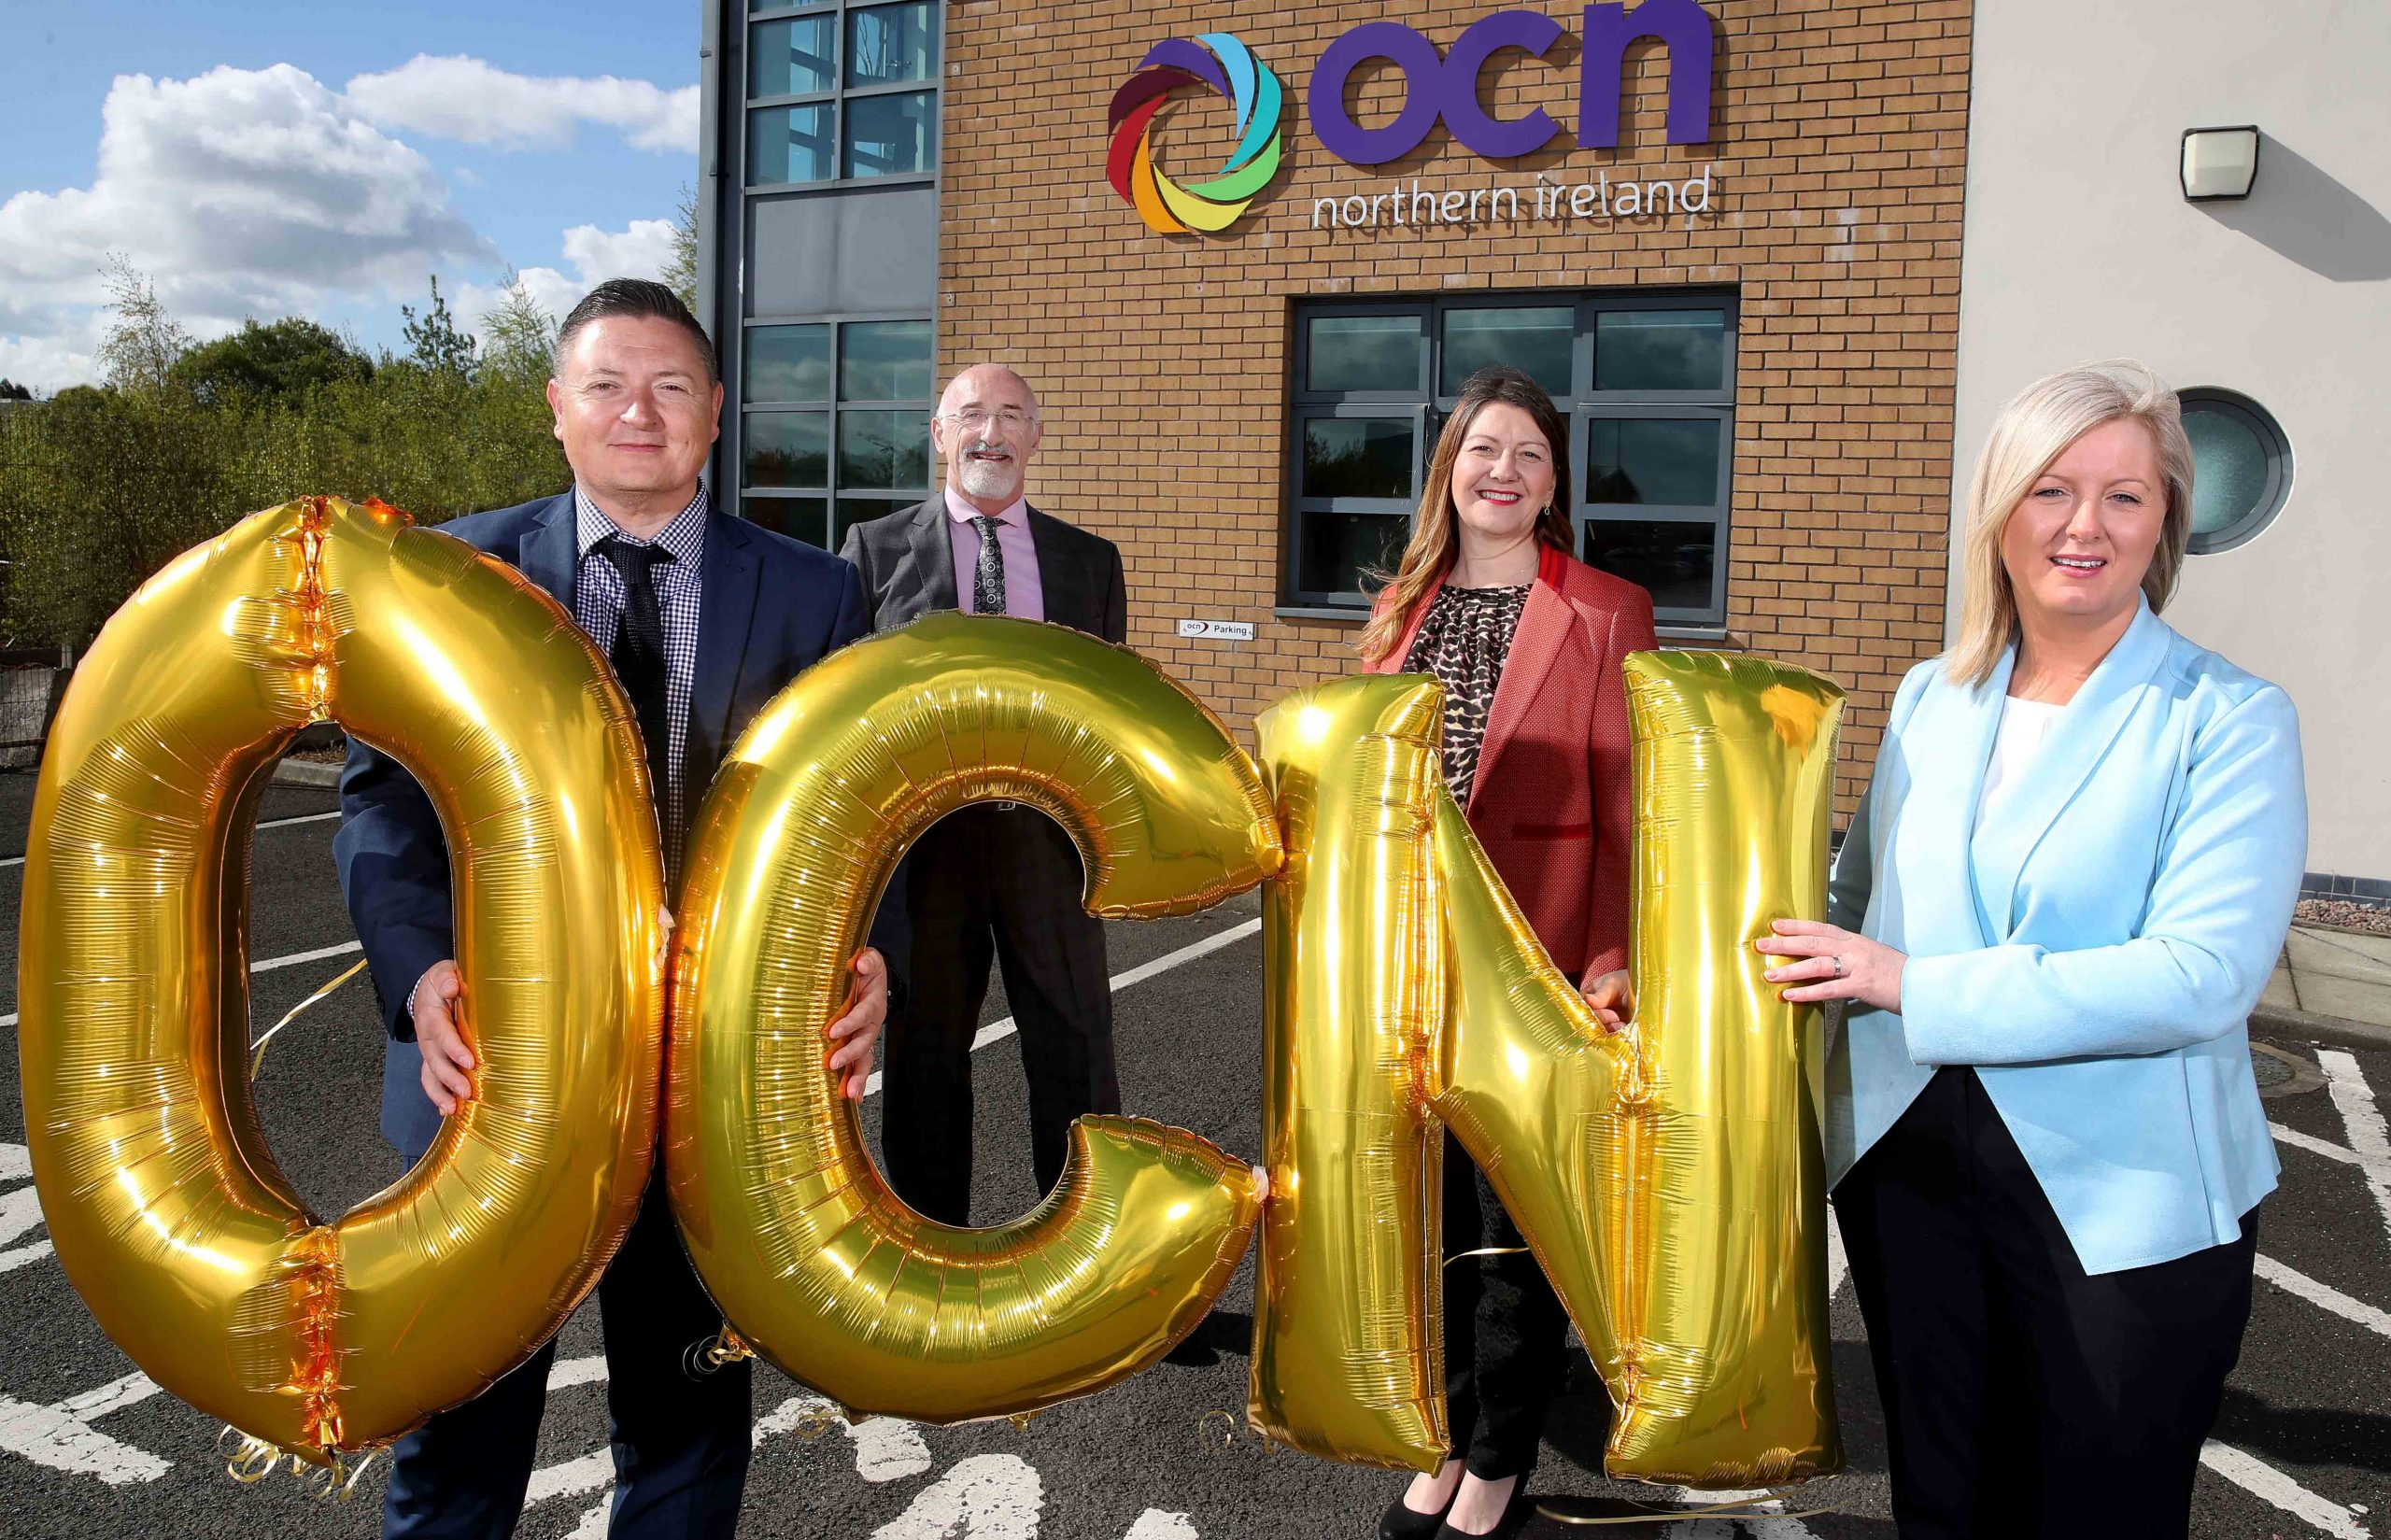 """OPEN COLLEGE NETWORK NI (OCN NI) has been awarded 'We invest in people, gold accreditation' by Investors in People, a status only 17% of accredited organisations have achieved. OCN NI is an educational charity and awarding body that advances education by developing qualifications for adults and young people throughout NI and has recently become Northern Ireland's leading awarding body. Martin Flynn, CEO, OCN NI, said: """"I am really very proud that our team has achieved the Gold accreditation from Investors in People. Everyone at OCN NI has shown how hard-work and commitment helps improve all of our working lives, especially poignant during a pandemic, and I'd like to send a personal note of thanks to all of my colleagues"""", he concluded. For more information visit www.ocnni.org.uk. Celebrating their gold accreditation are OCN NI colleagues (l to r), Martin Flynn, CEO, Simon Hamilton, Director of Compliance and Audit, Jo Bailey, Director of Business Development and Charlotte Fegan, Director of Corporate Services."""